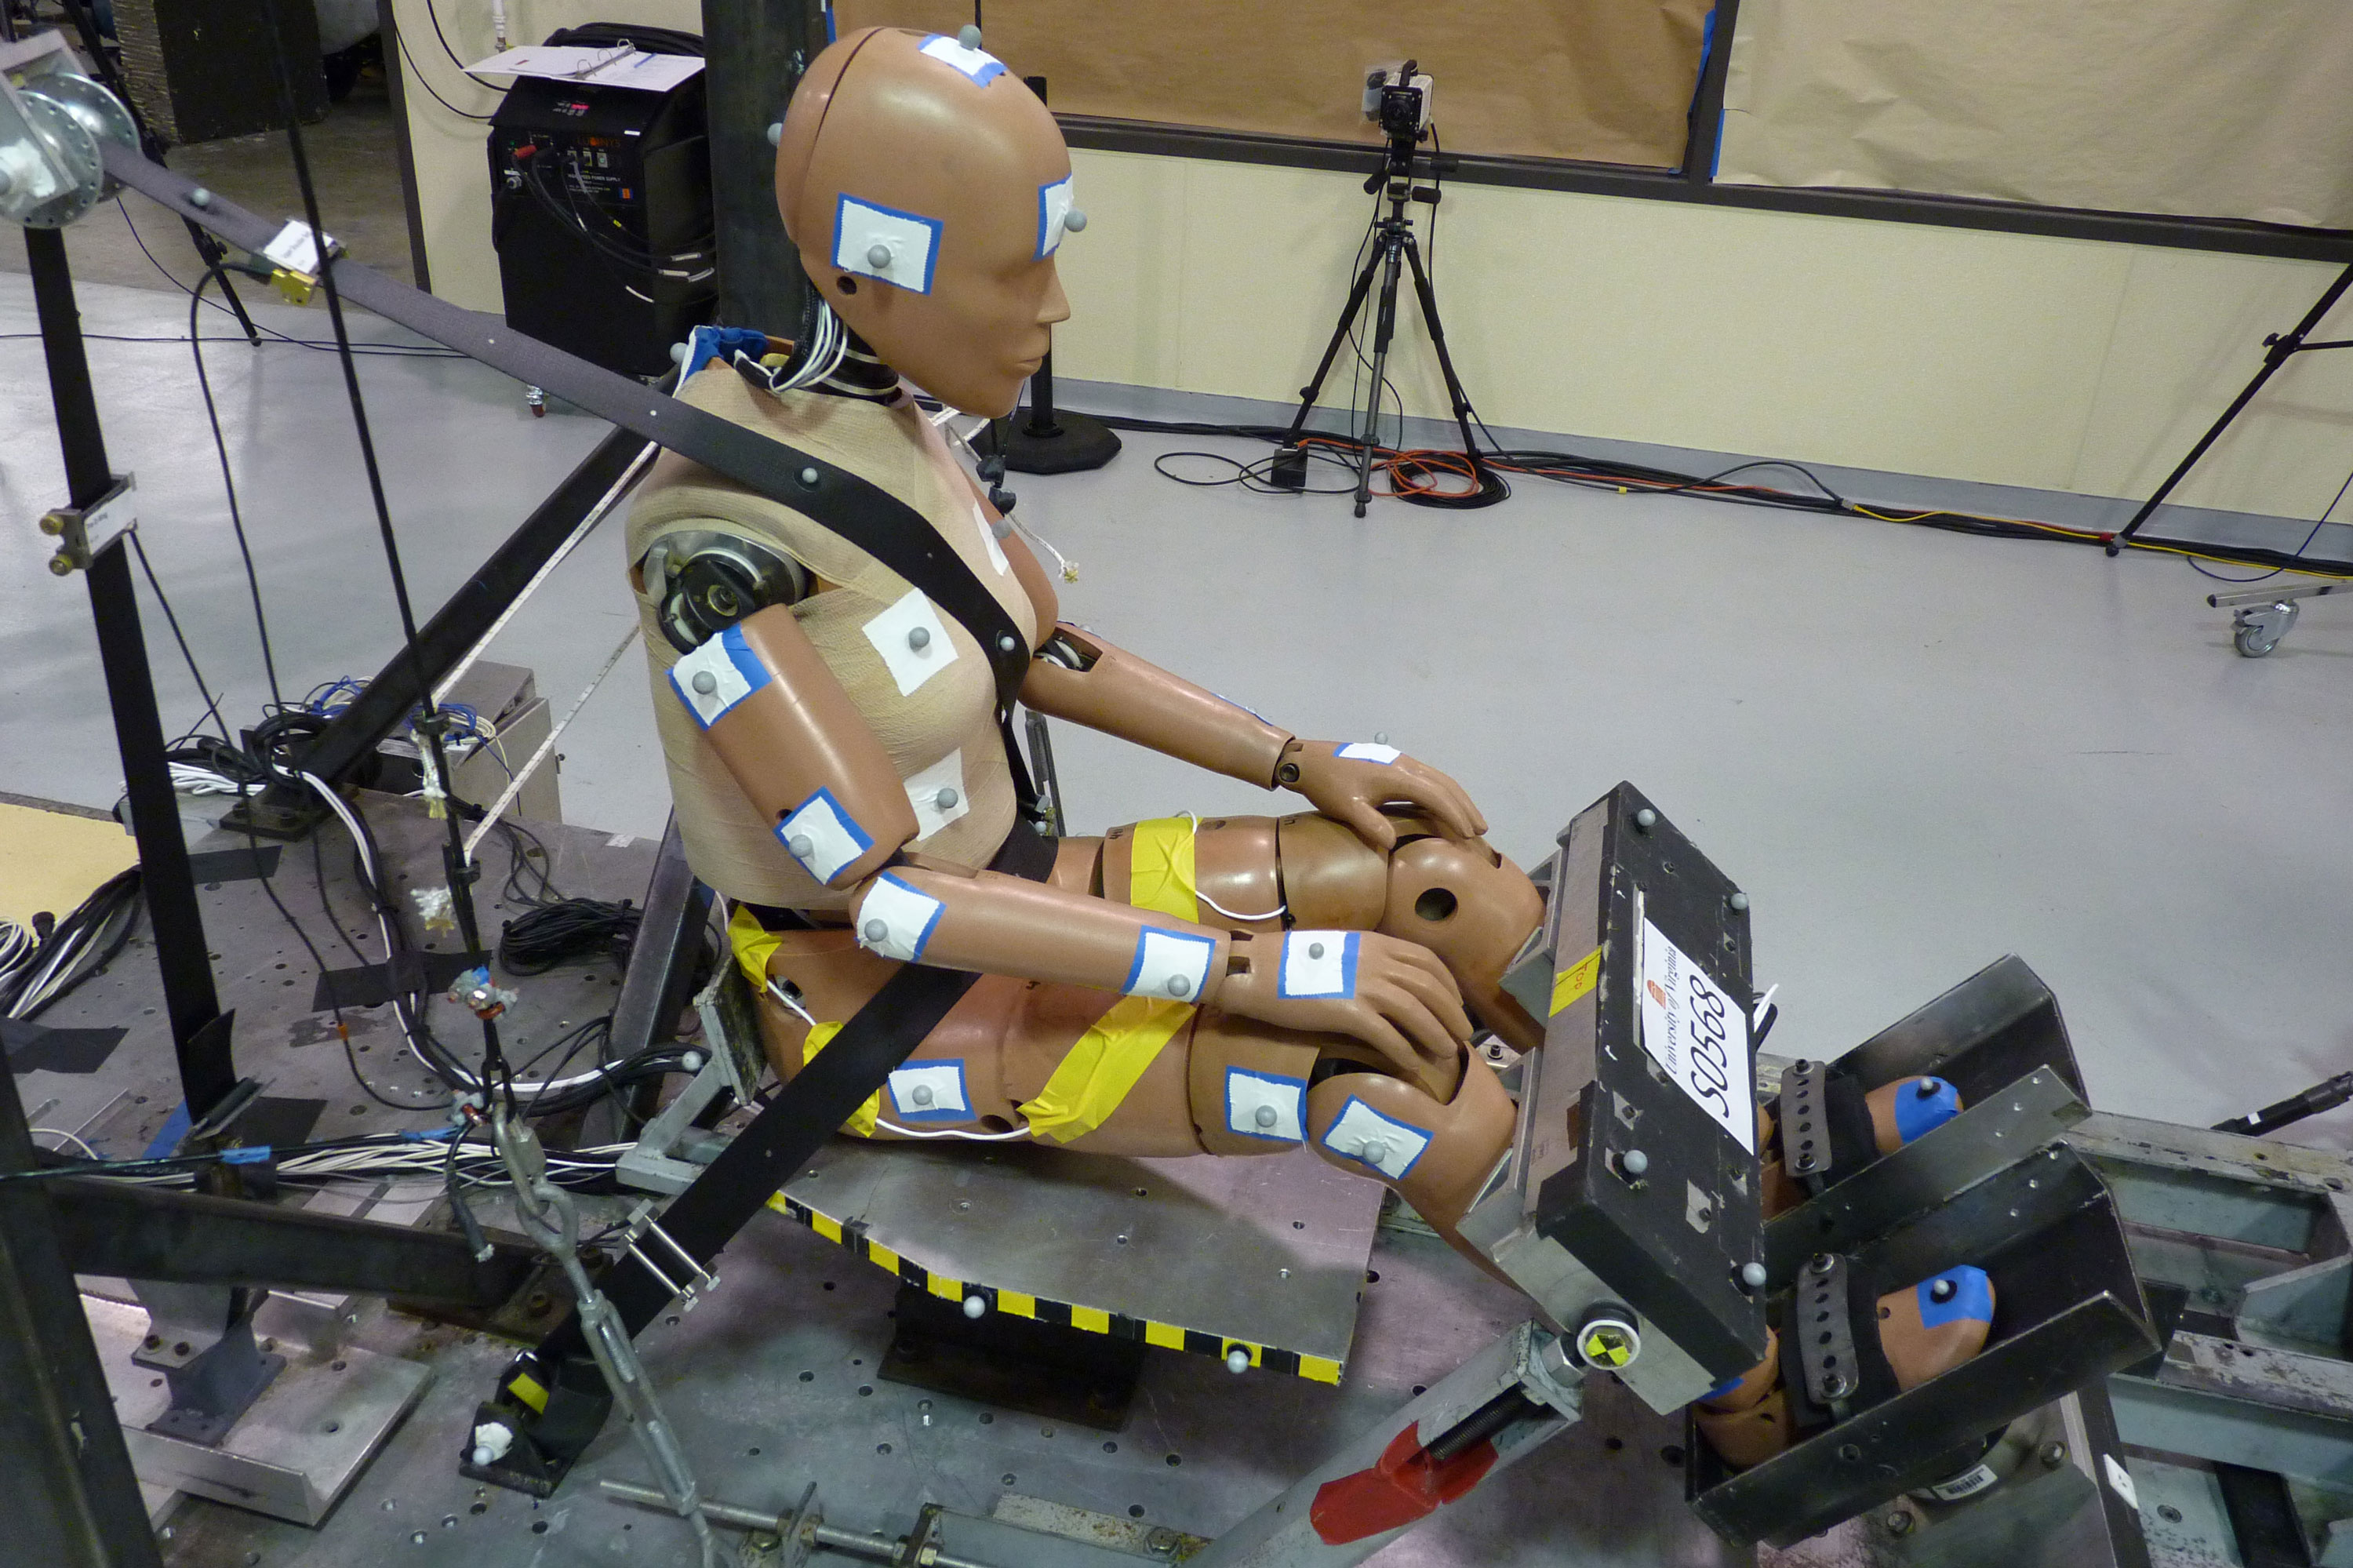 The Center for Applied Biomechanics is testing an industry-standard dummy designed to represent a 5th-percentile woman, to evaluate how realistically the dummy represents a female automobile occupant. (Photo courtesy Center for Applied Biomechanics)